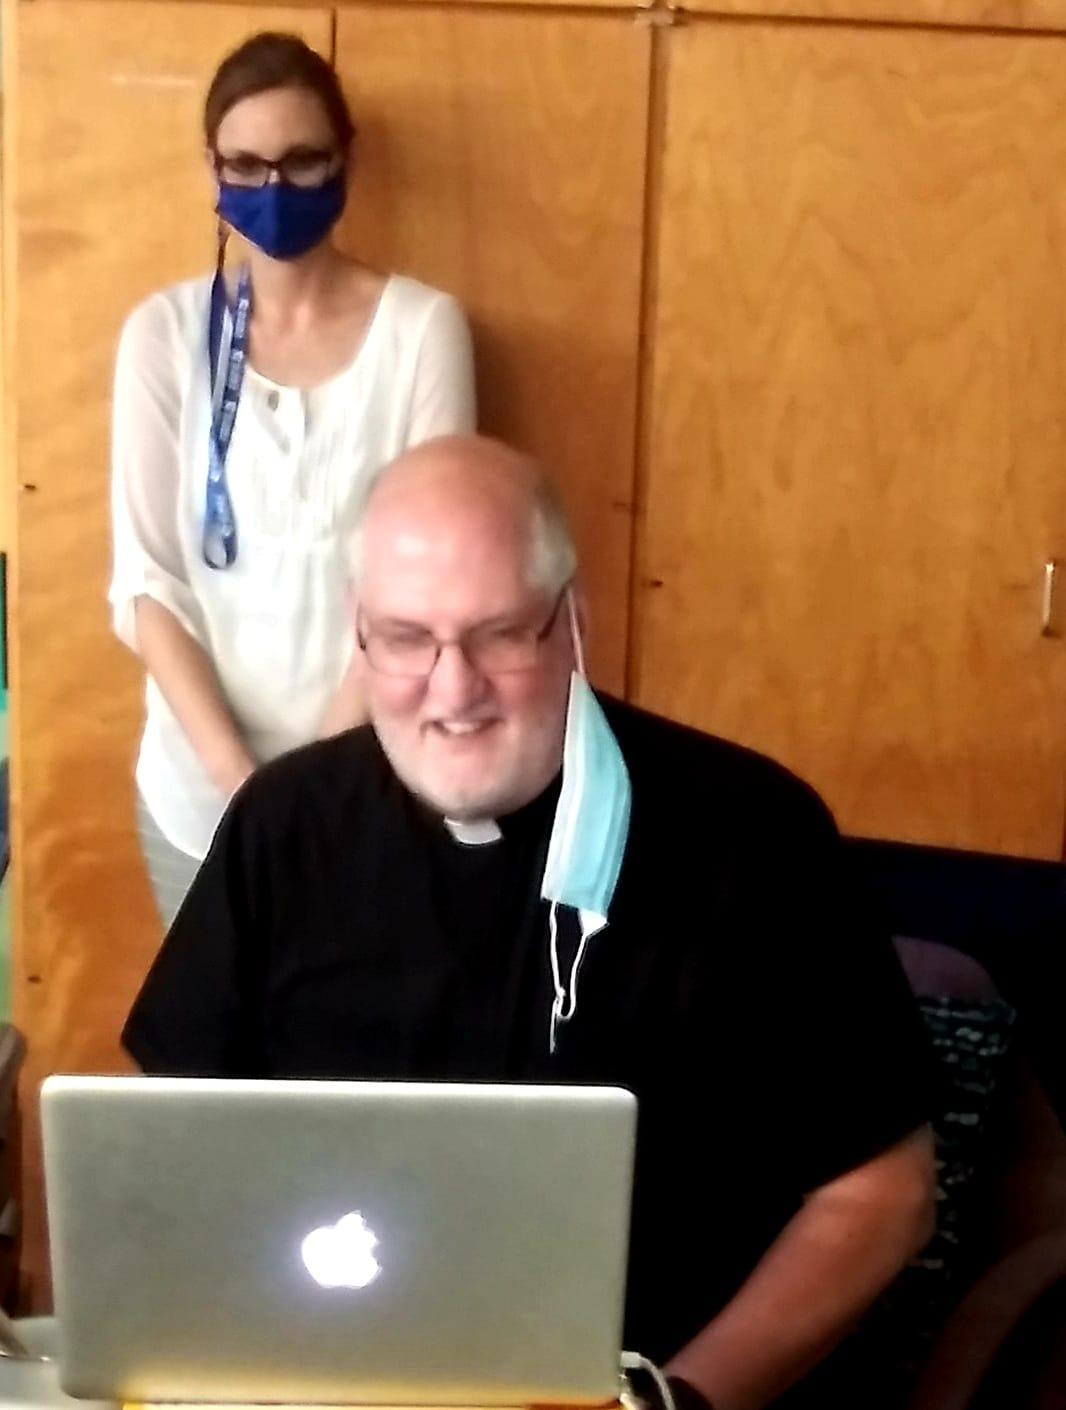 Father Paul joining a Google Meet